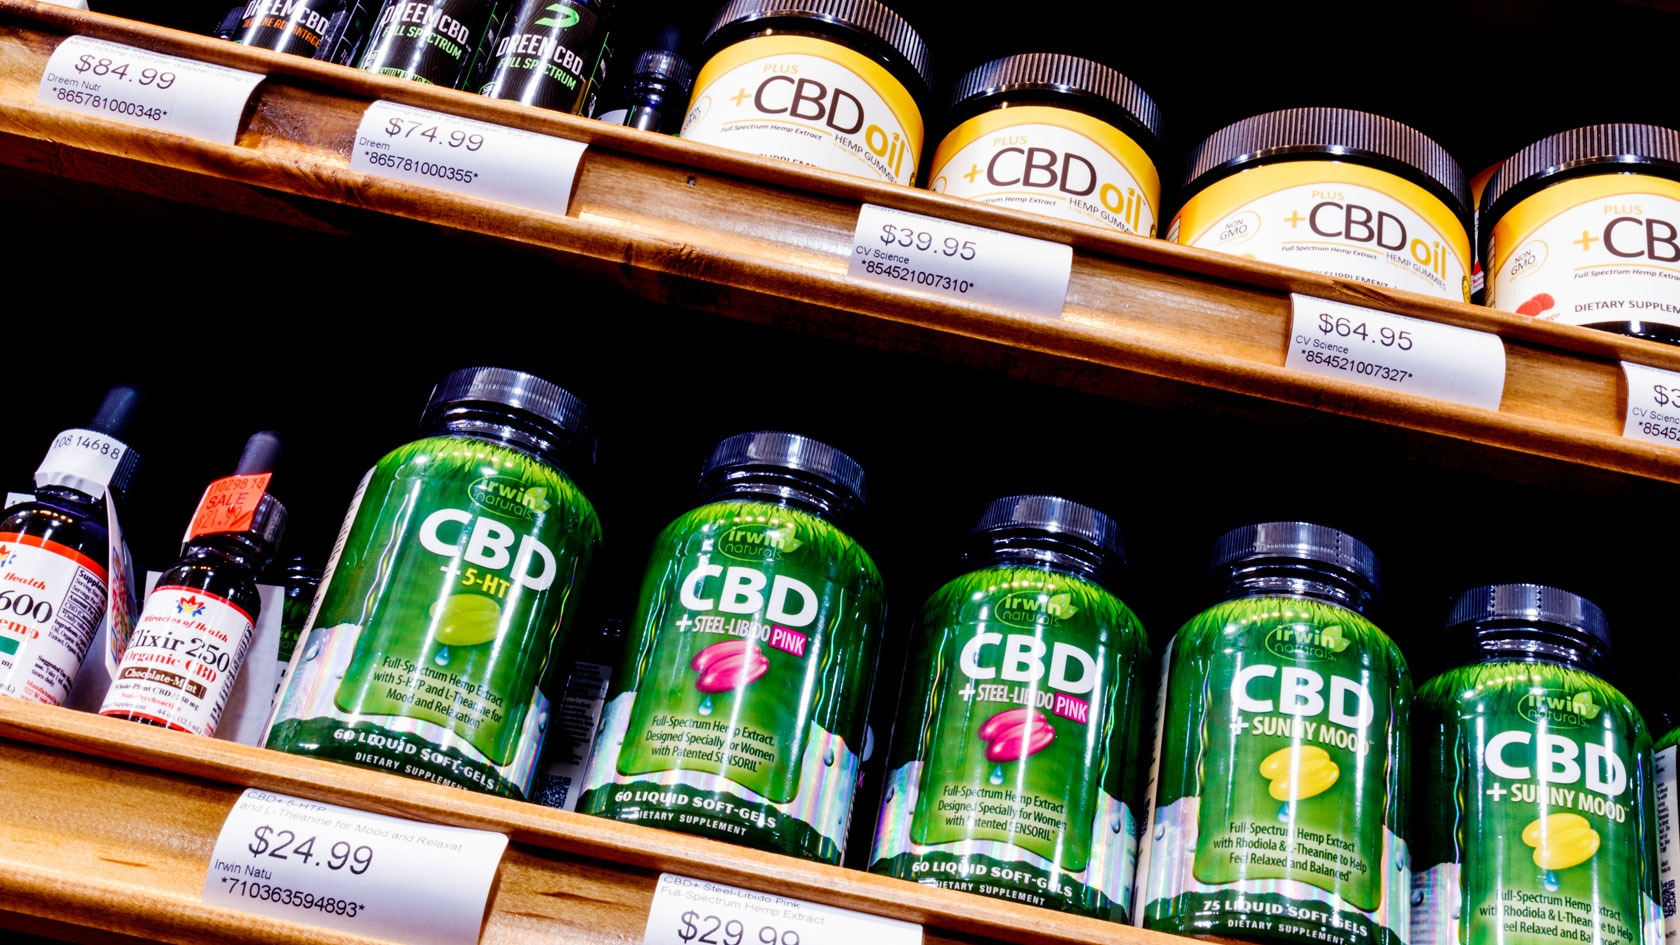 cbd oil in georgia on a shelf of a cbd shop